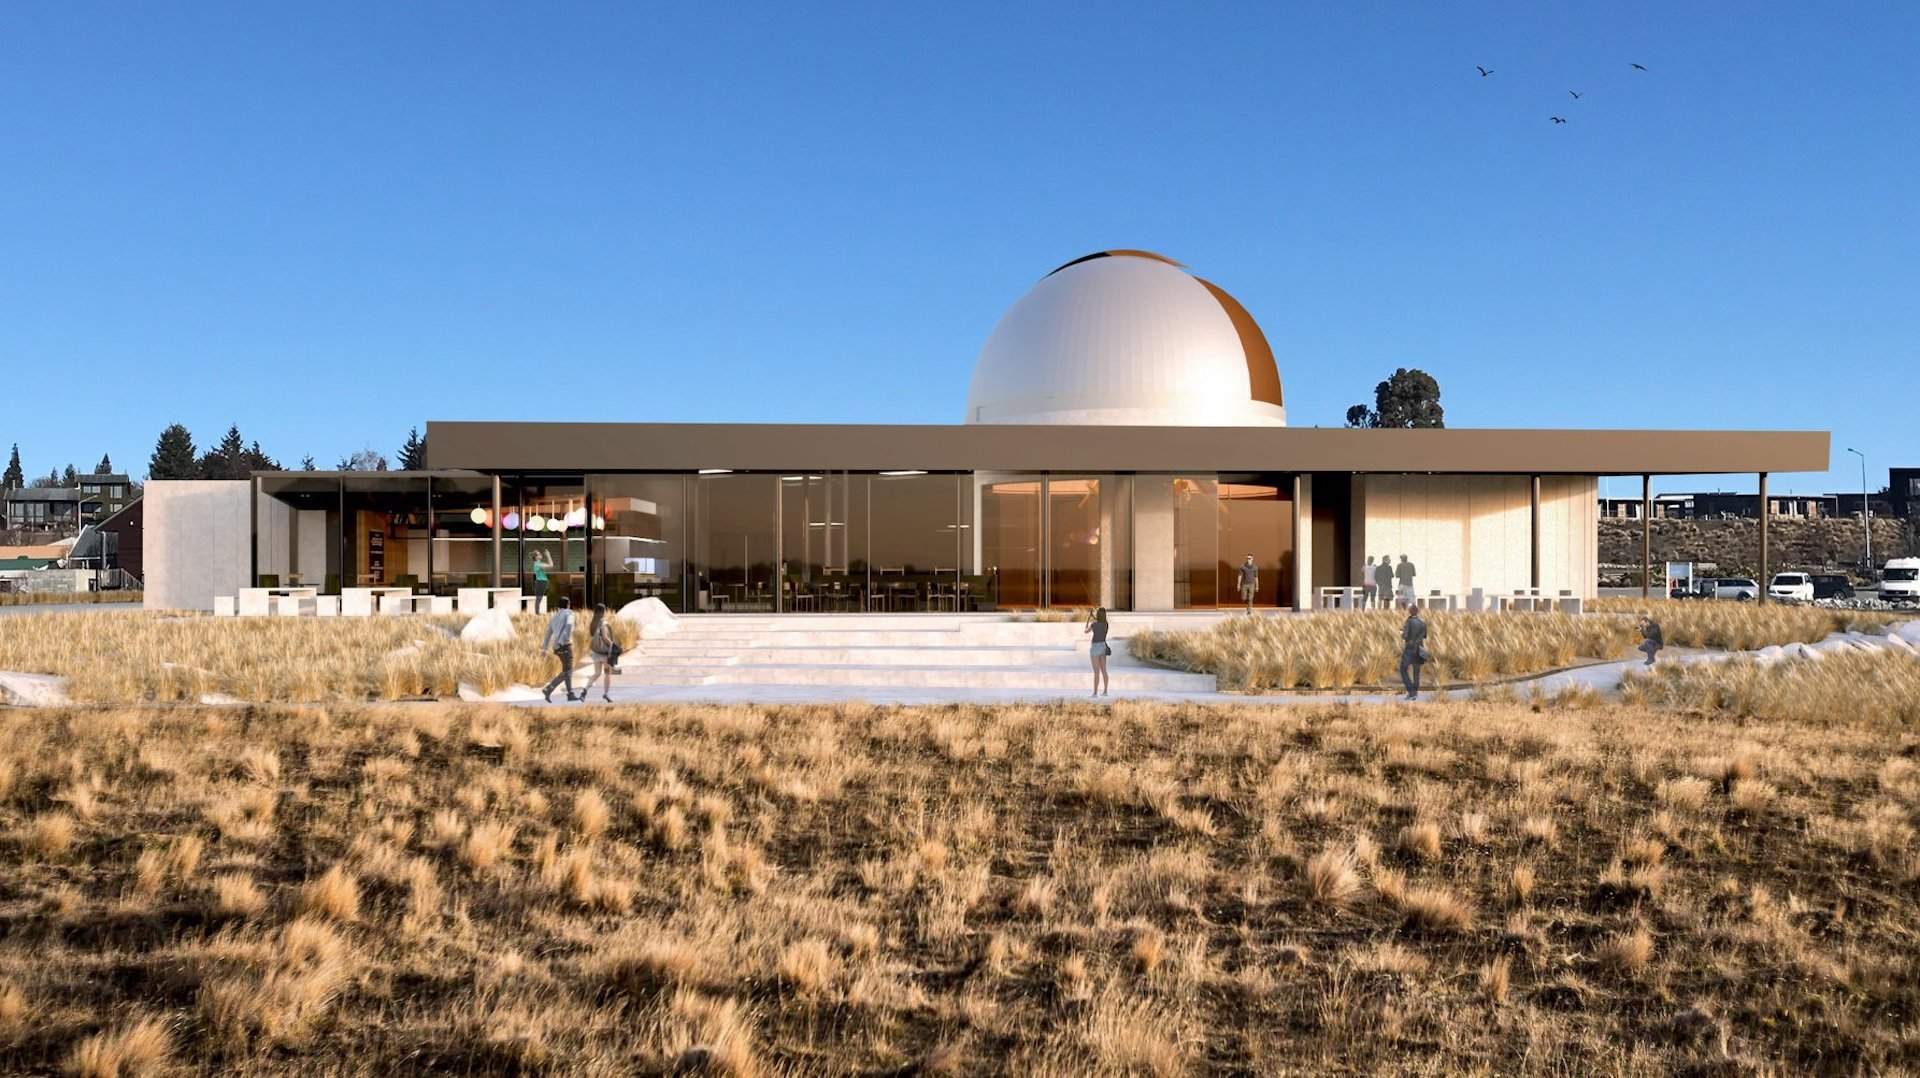 Lake Tekapo Is Now Home to a Multimillion-Dollar Astronomy Centre